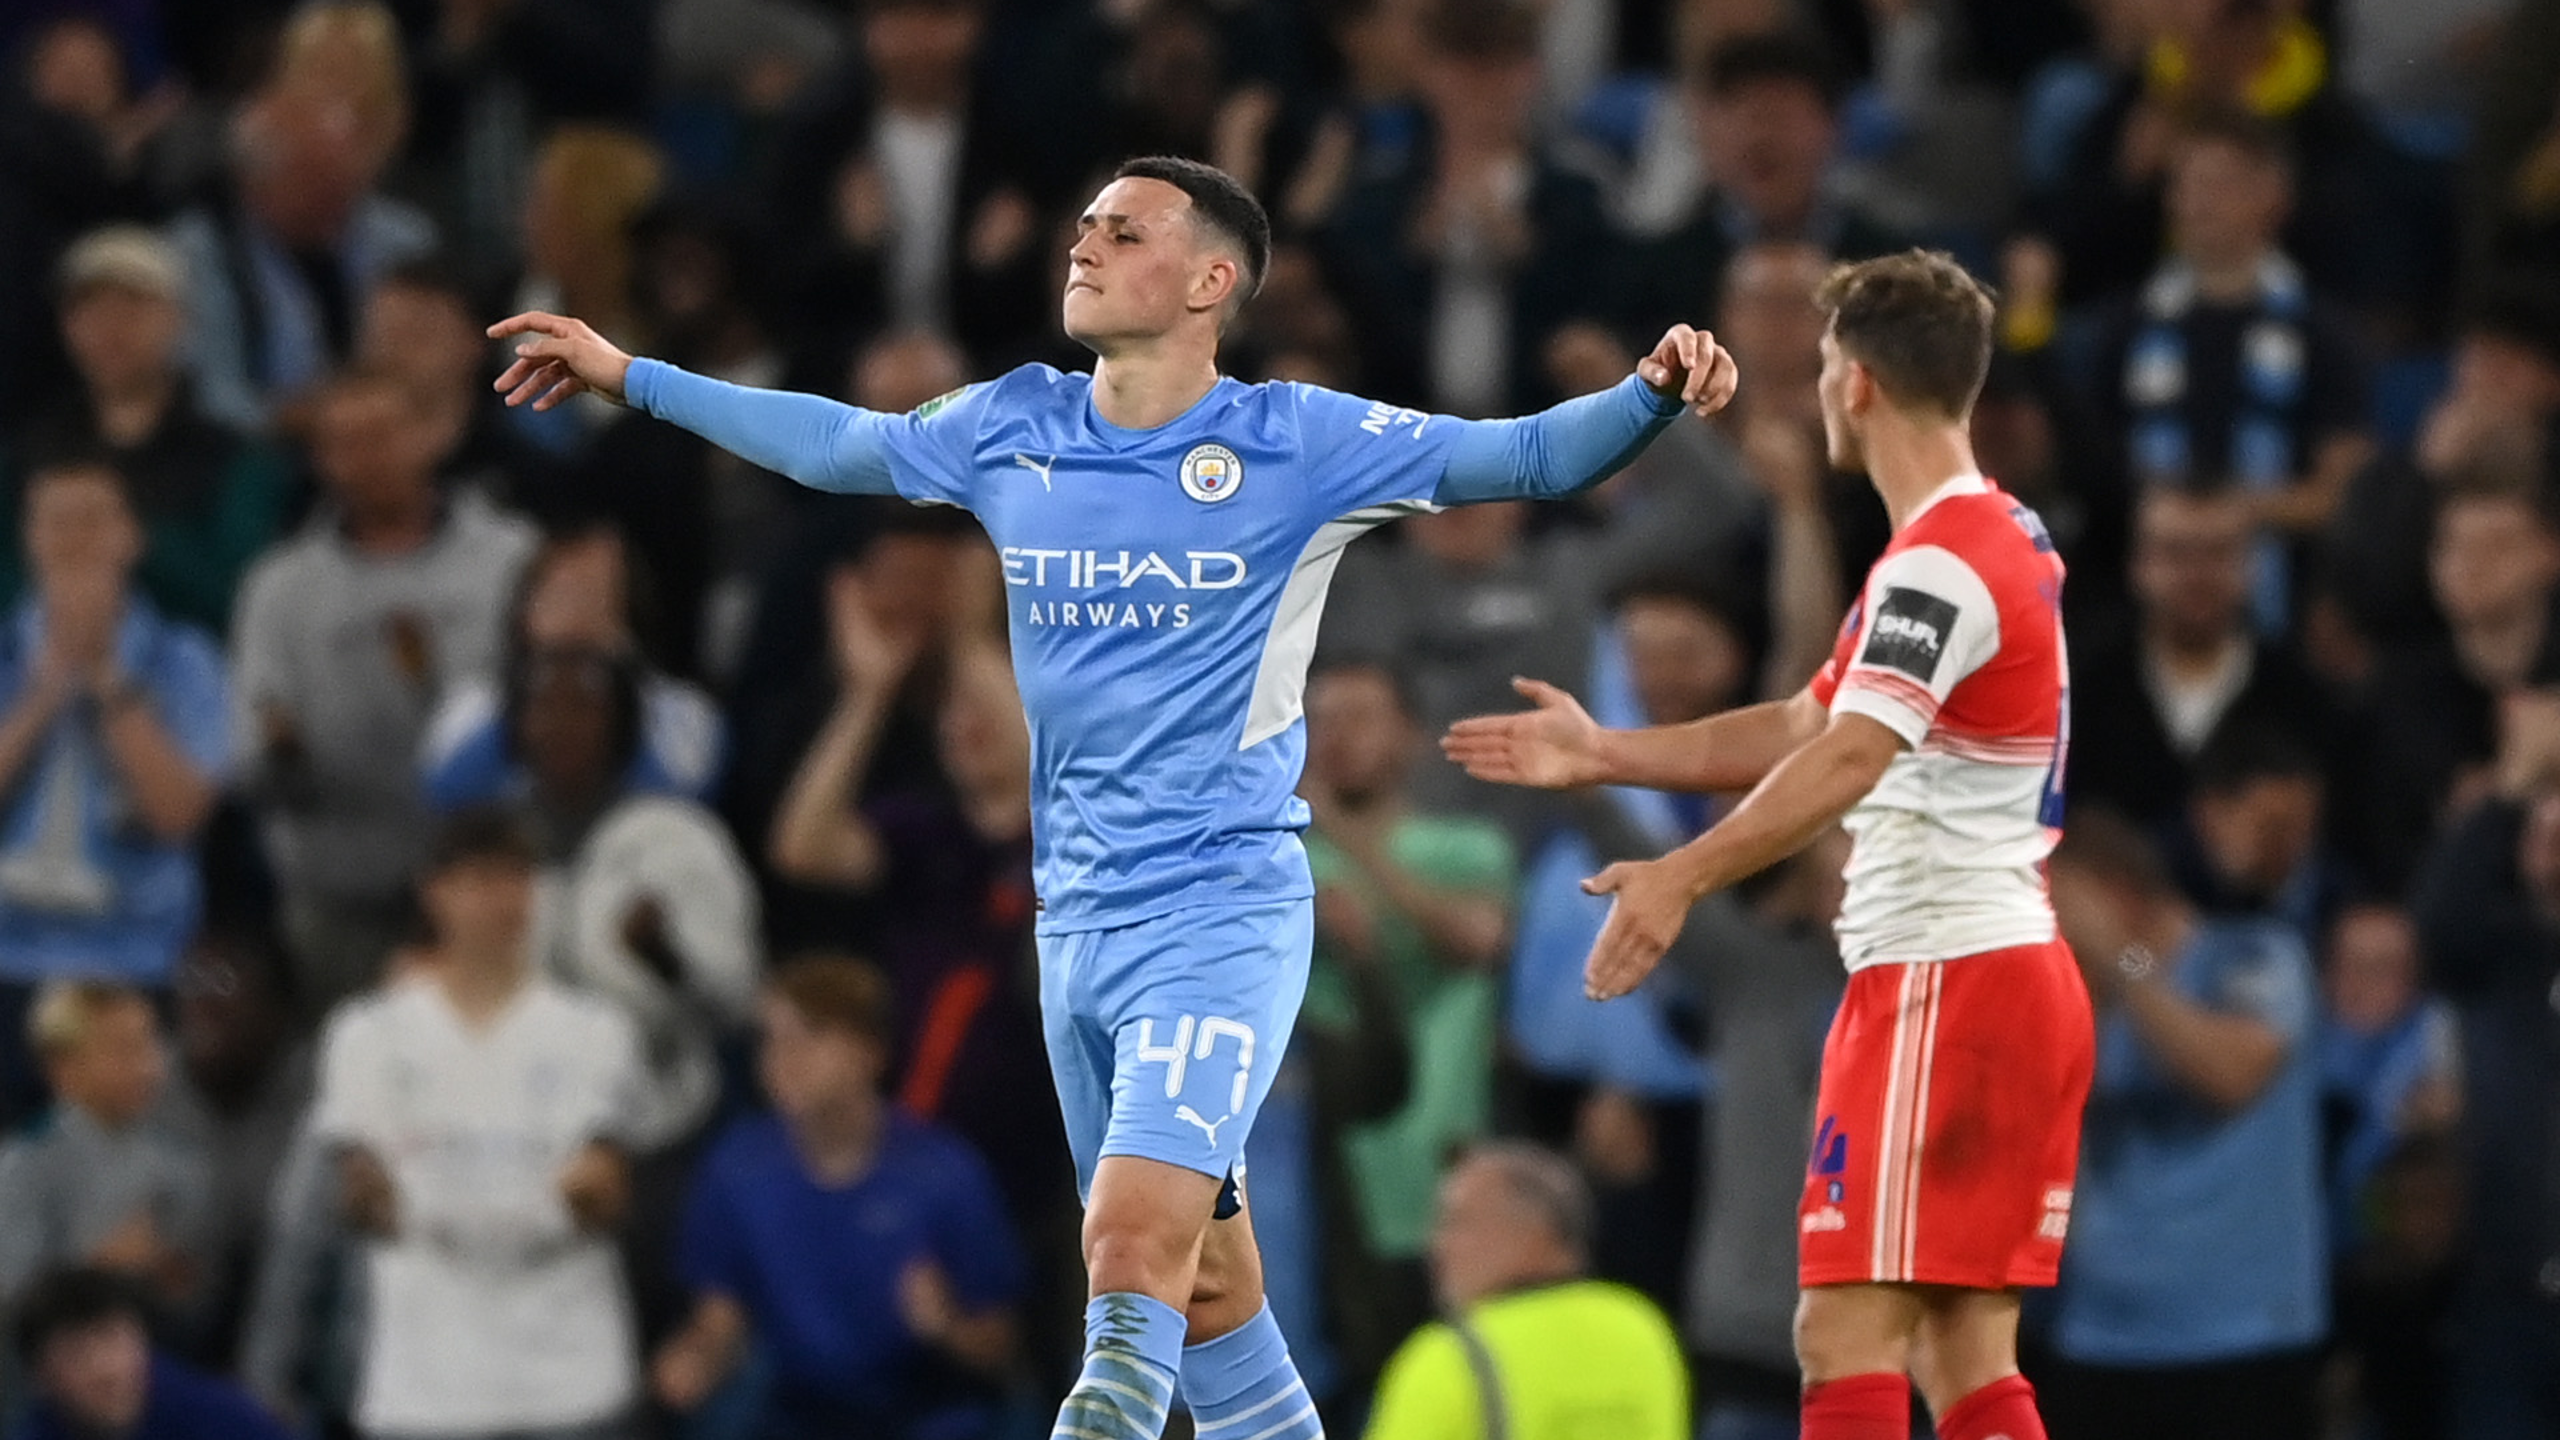 Gallery: City get Carabao Cup defence off to flying start